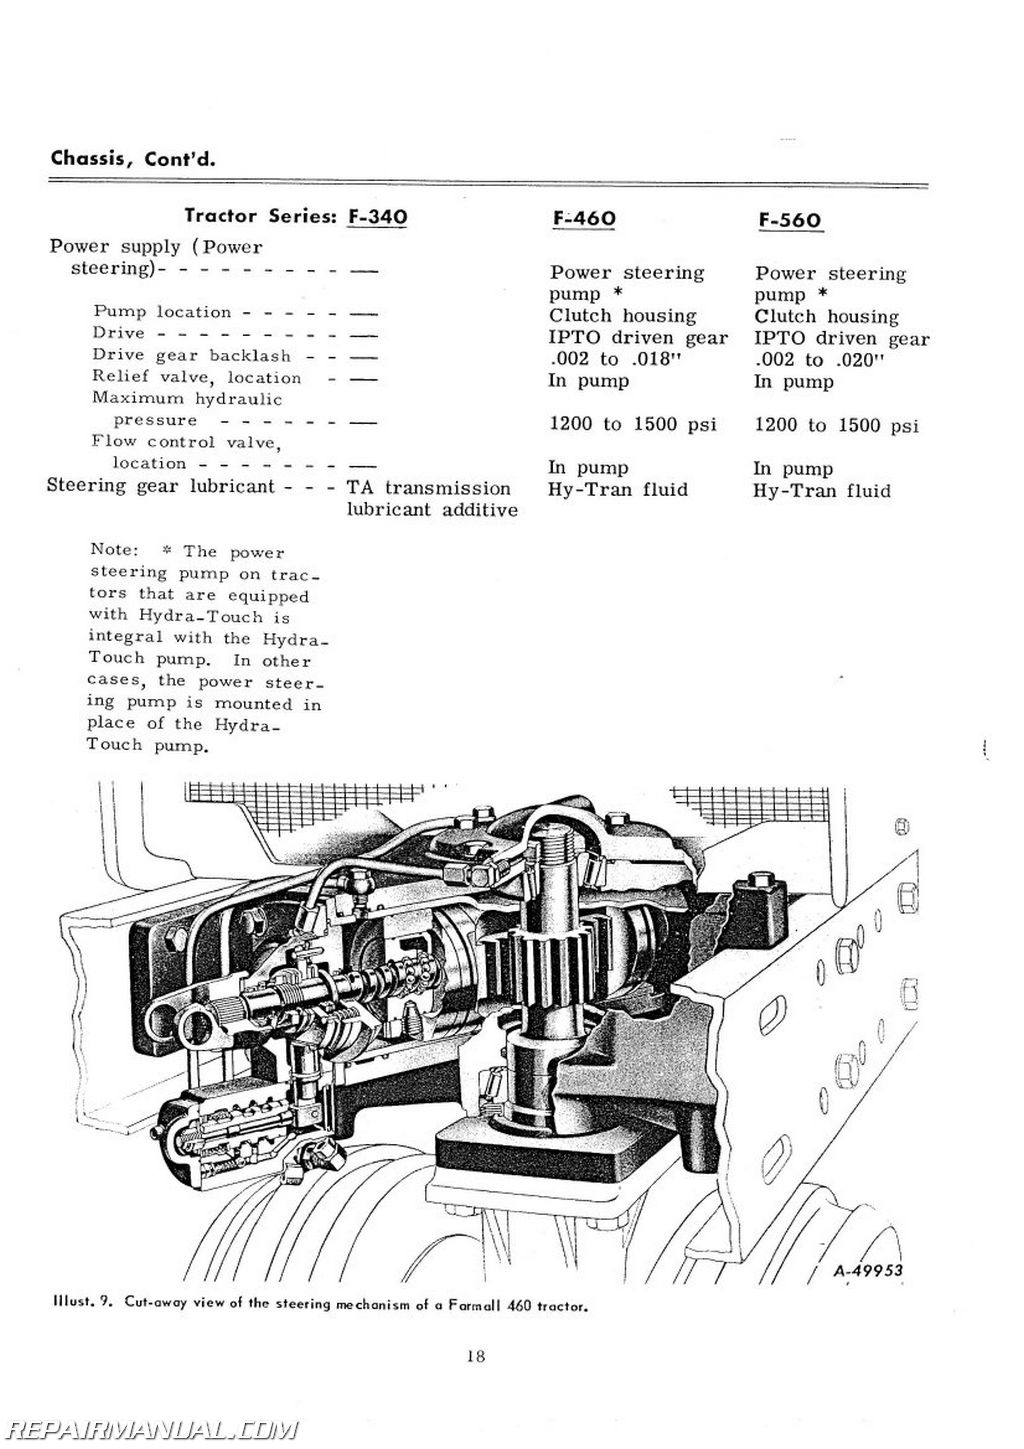 hight resolution of farmall 460 transmission diagram schematics wiring diagrams u2022 rh parntesis co ih 574 ih 1206